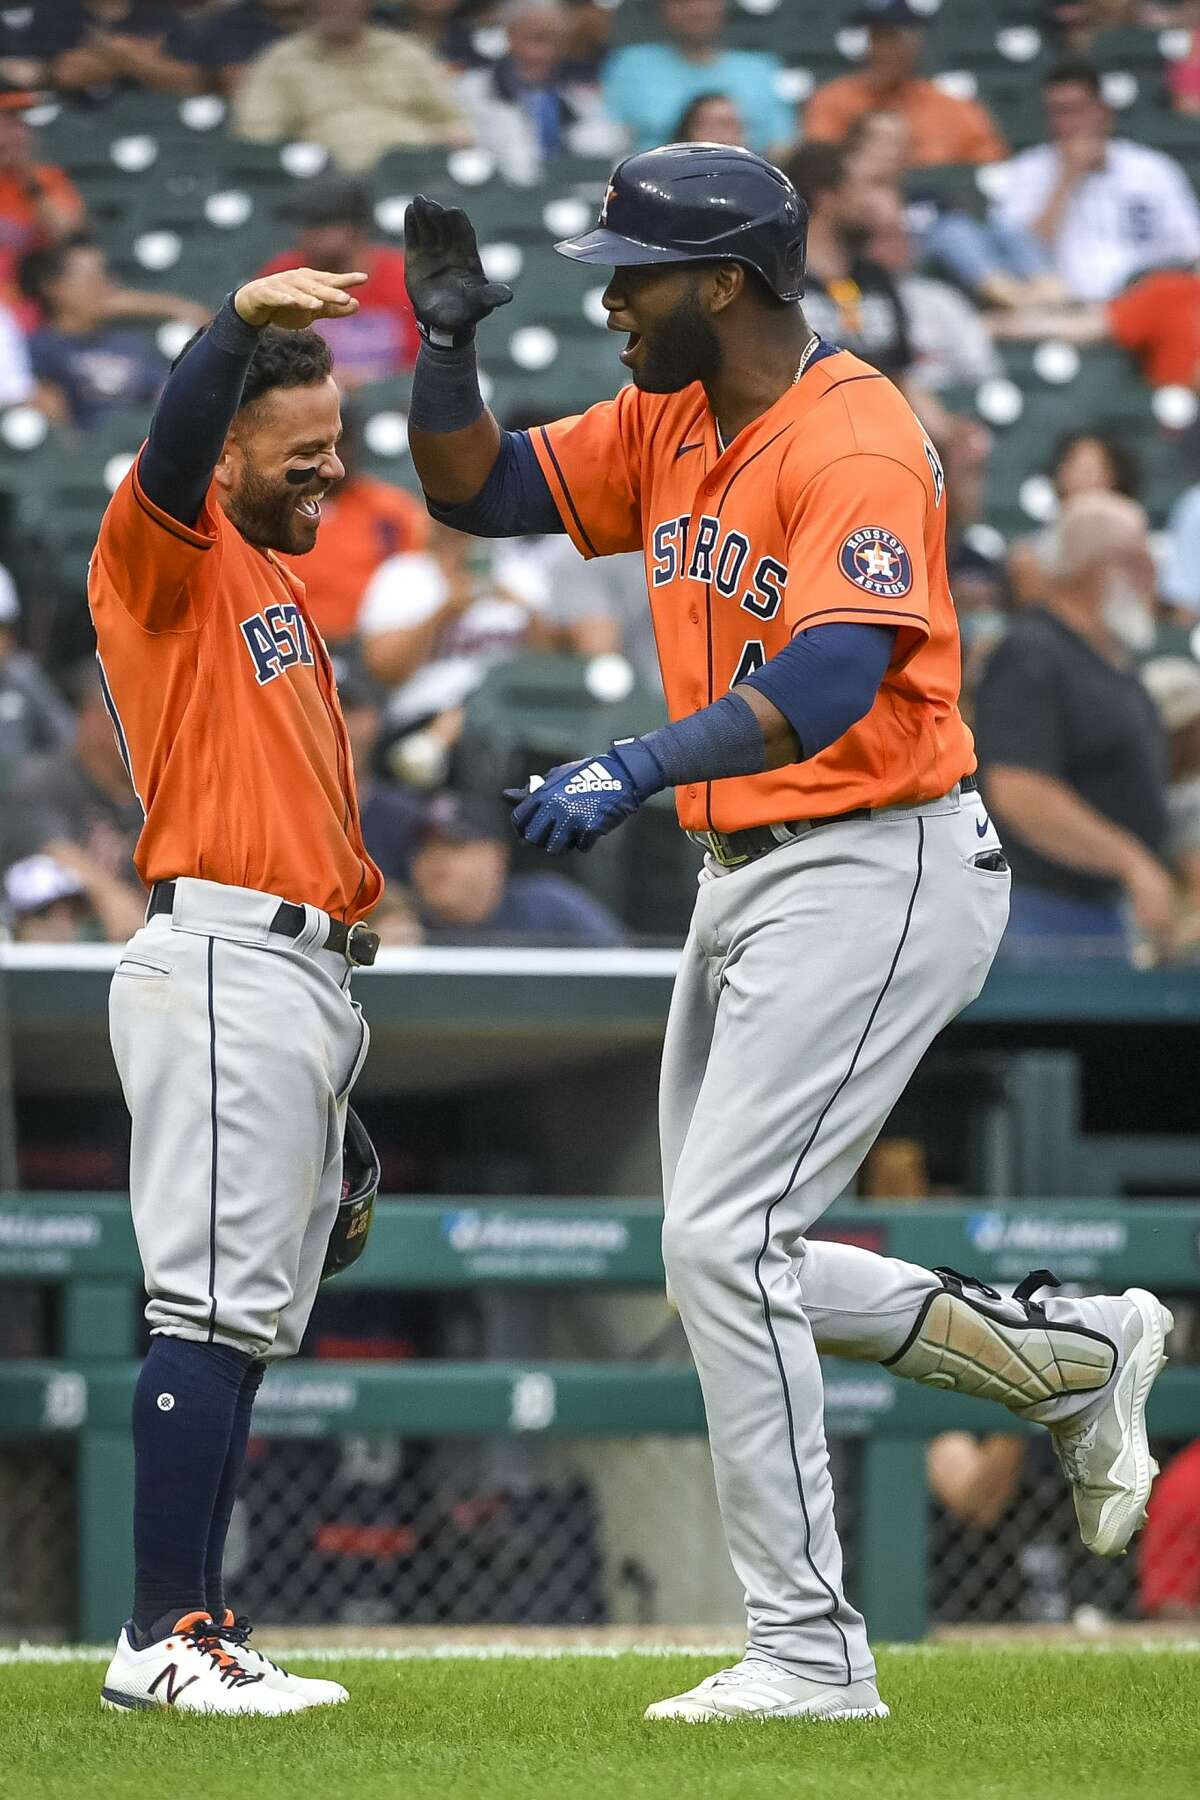 DETROIT, MICHIGAN - JUNE 26: Jose Altuve #27 of the Houston Astros celebrates with Yordan Alvarez #44 of the Houston Astros after Alvarez hit a homer and Altuve scored during the top of the sixth inning of game two of a doubleheader at Comerica Park on June 26, 2021 in Detroit, Michigan. (Photo by Nic Antaya/Getty Images)